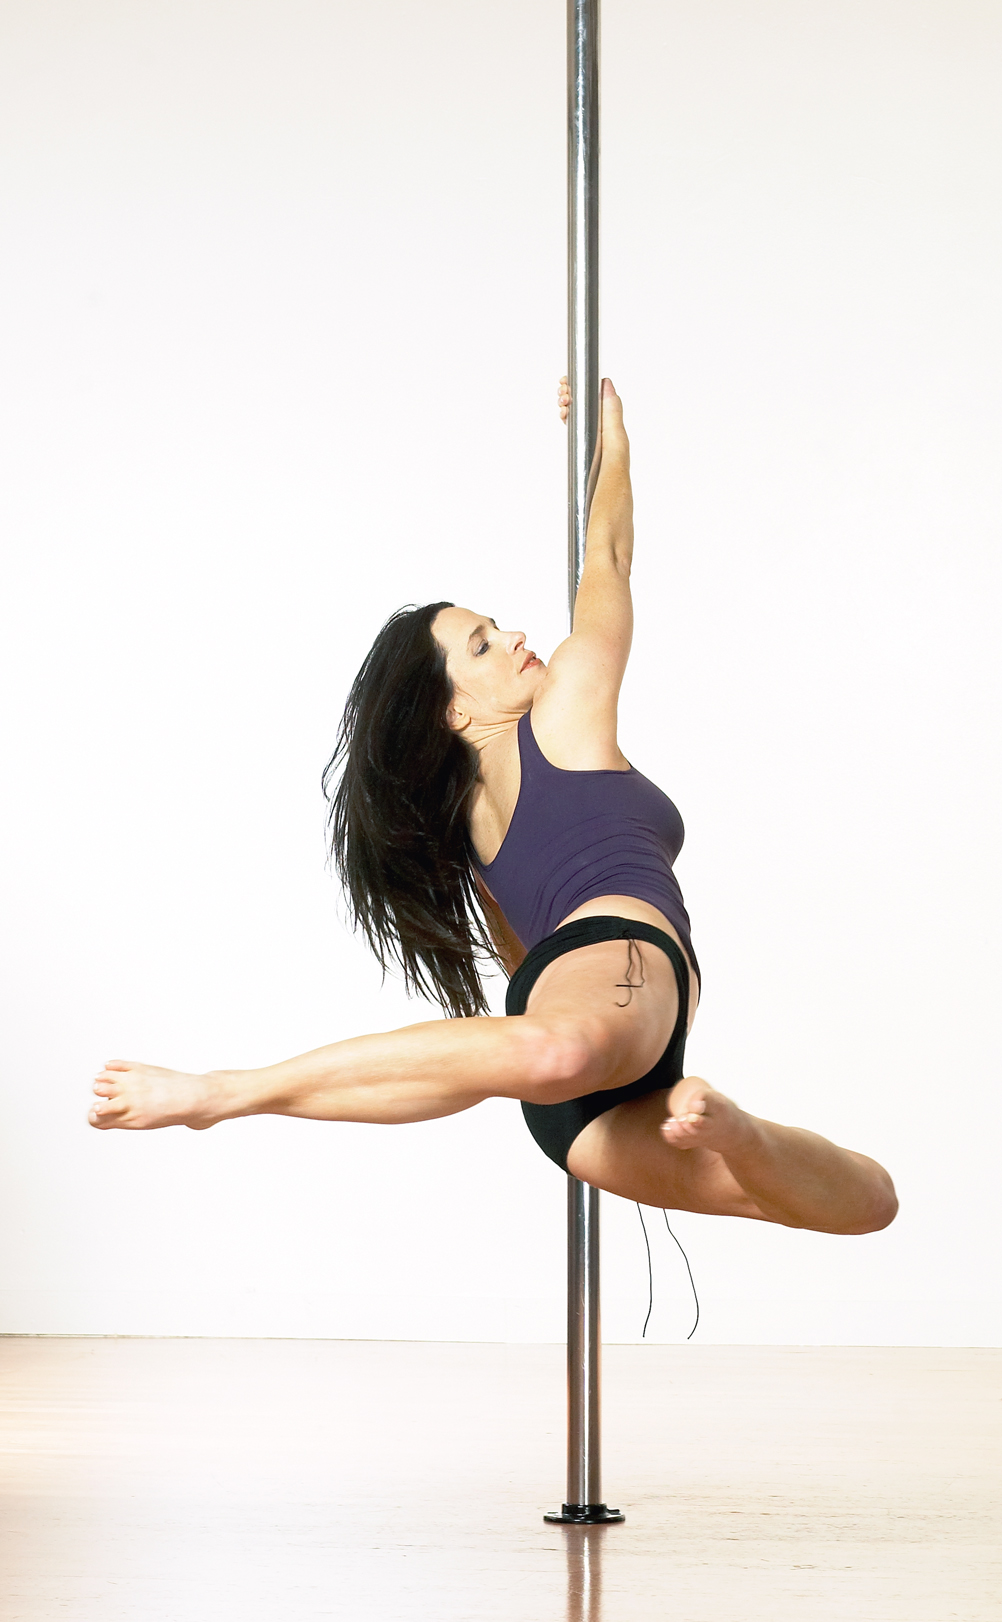 Pole dance workout video